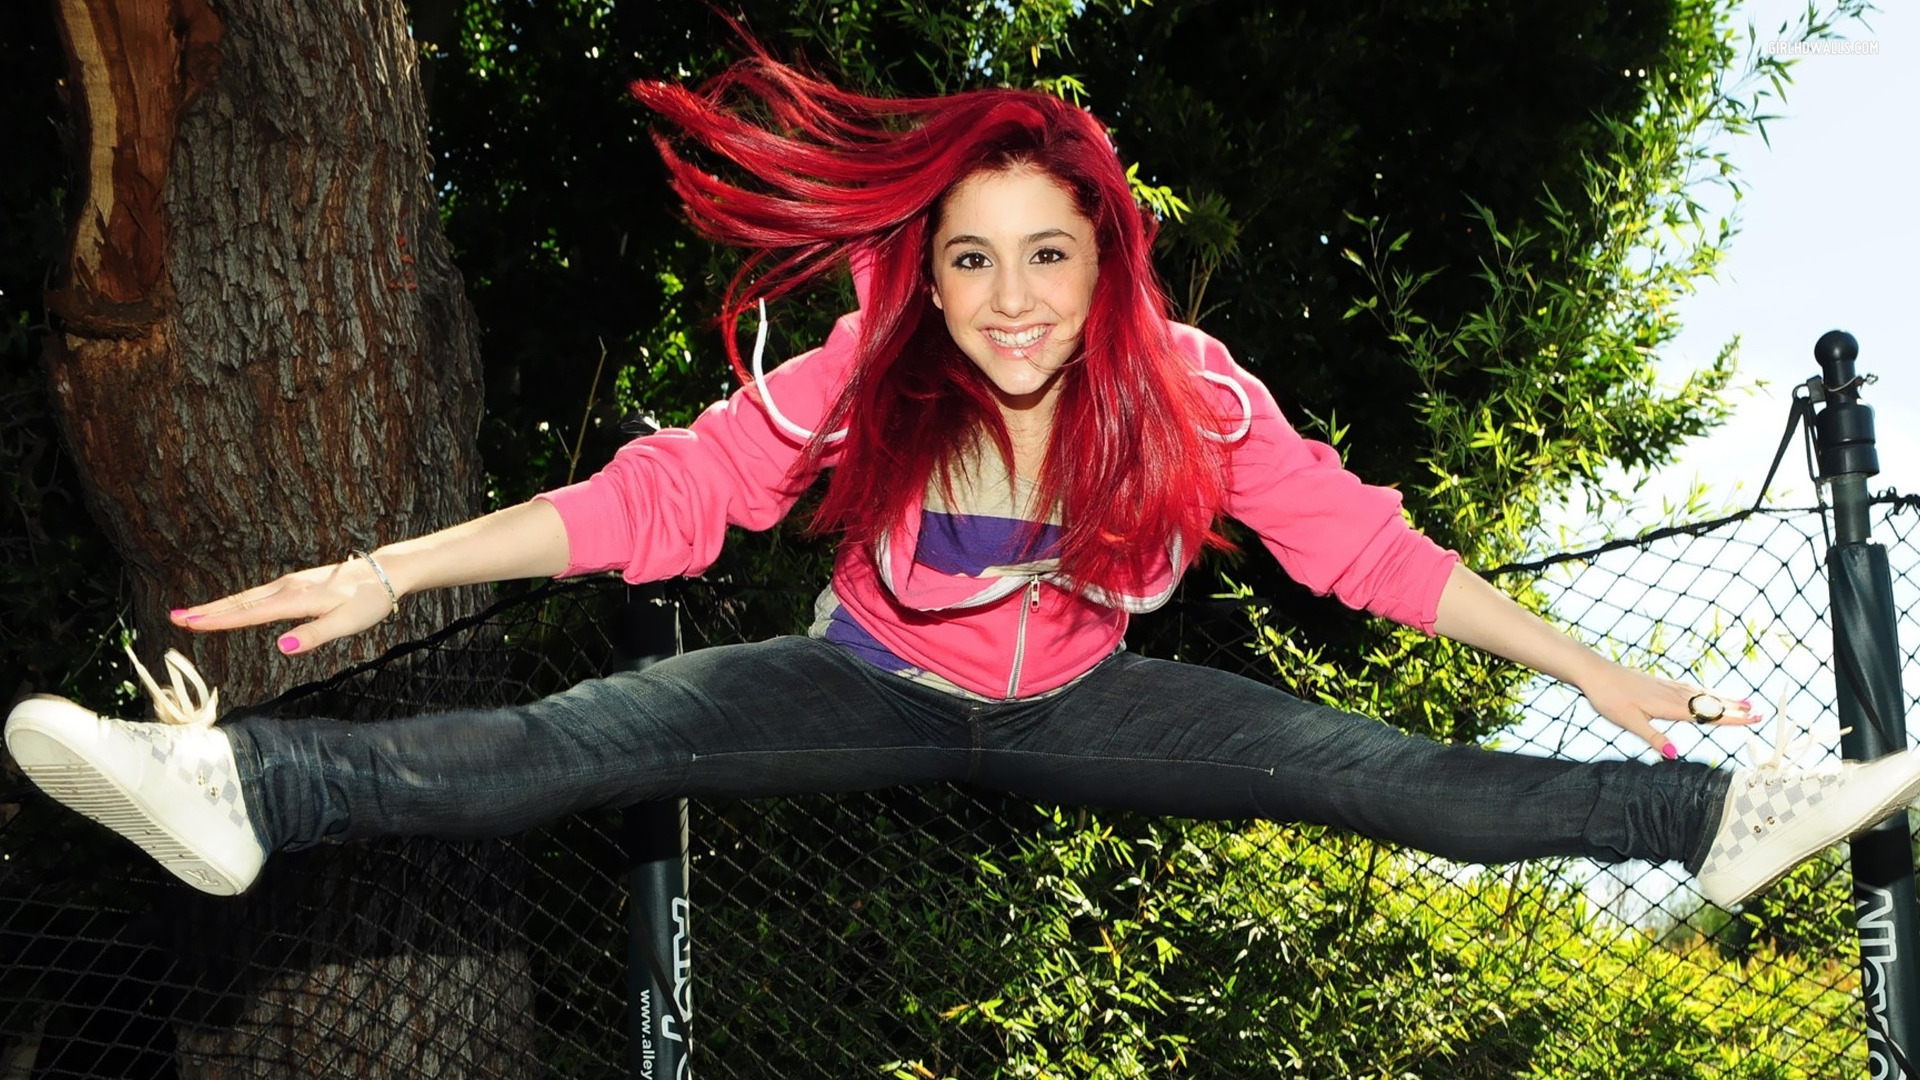 Ariana Grande Wallpapers, Pictures, Images